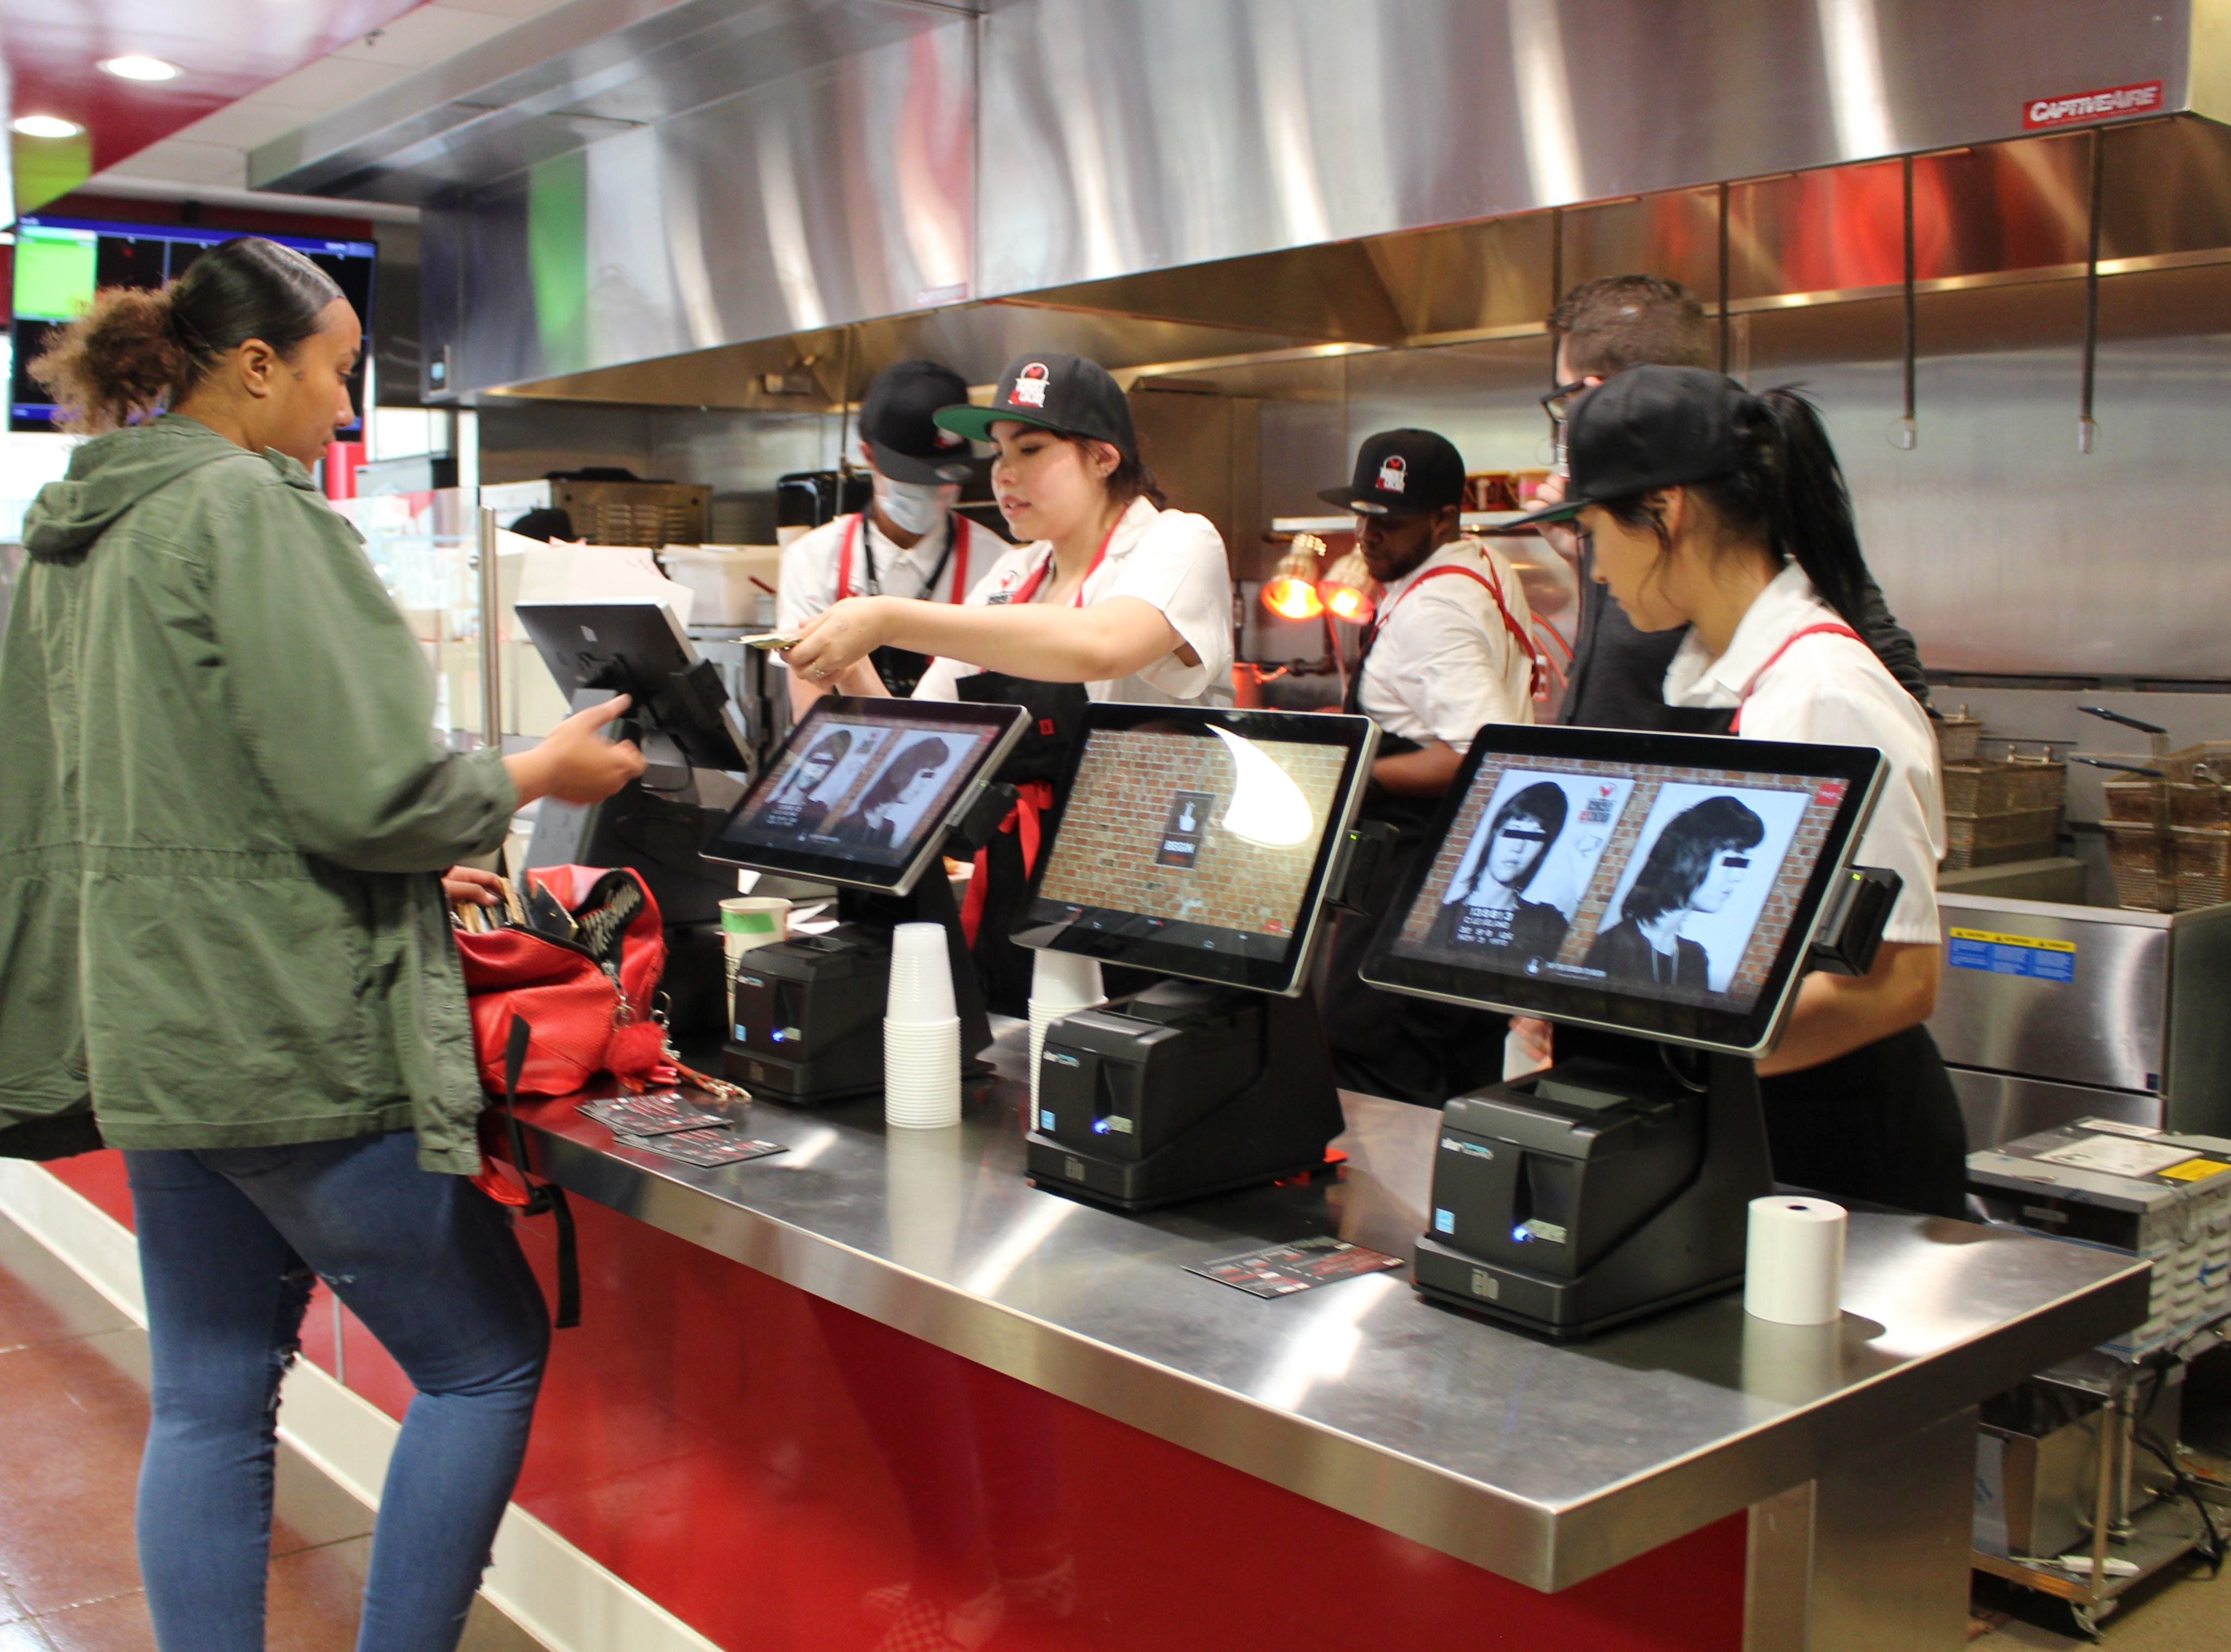 Monroe's Hot Chicken in downtown Phoenix uses a self-service point of sale system so customers can place their order without assistance from staff.